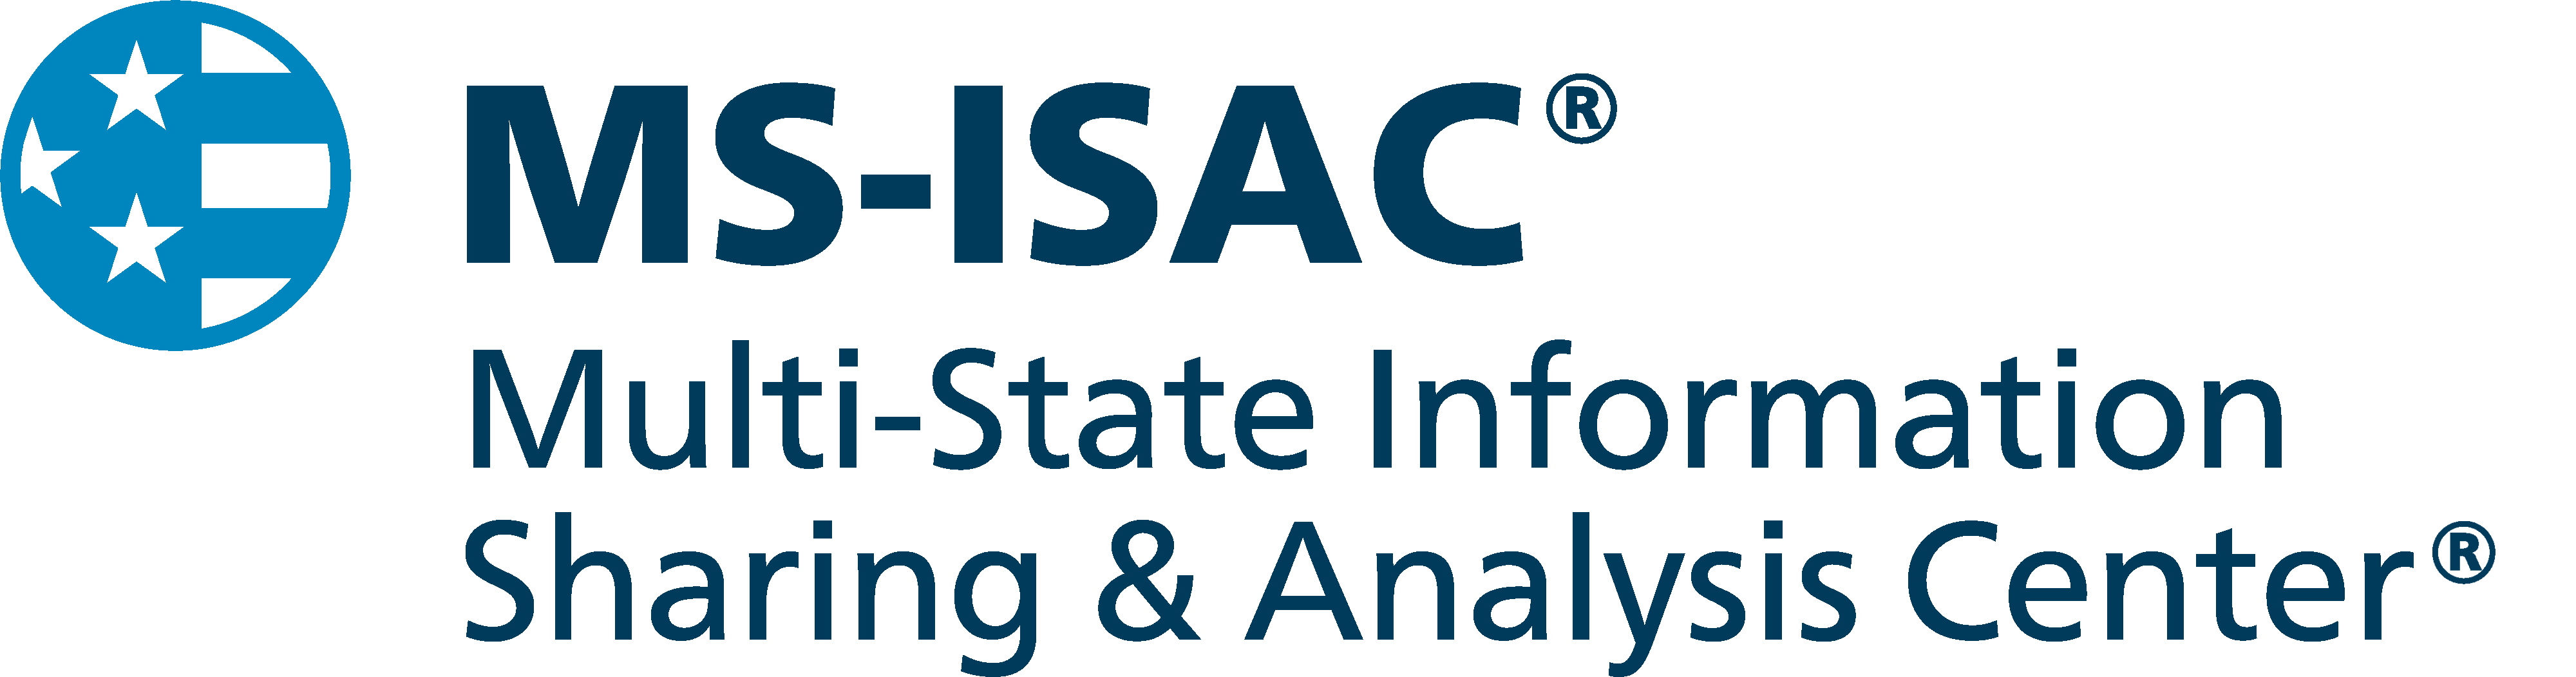 Multi-State Information Sharing and Analysis Center (R)